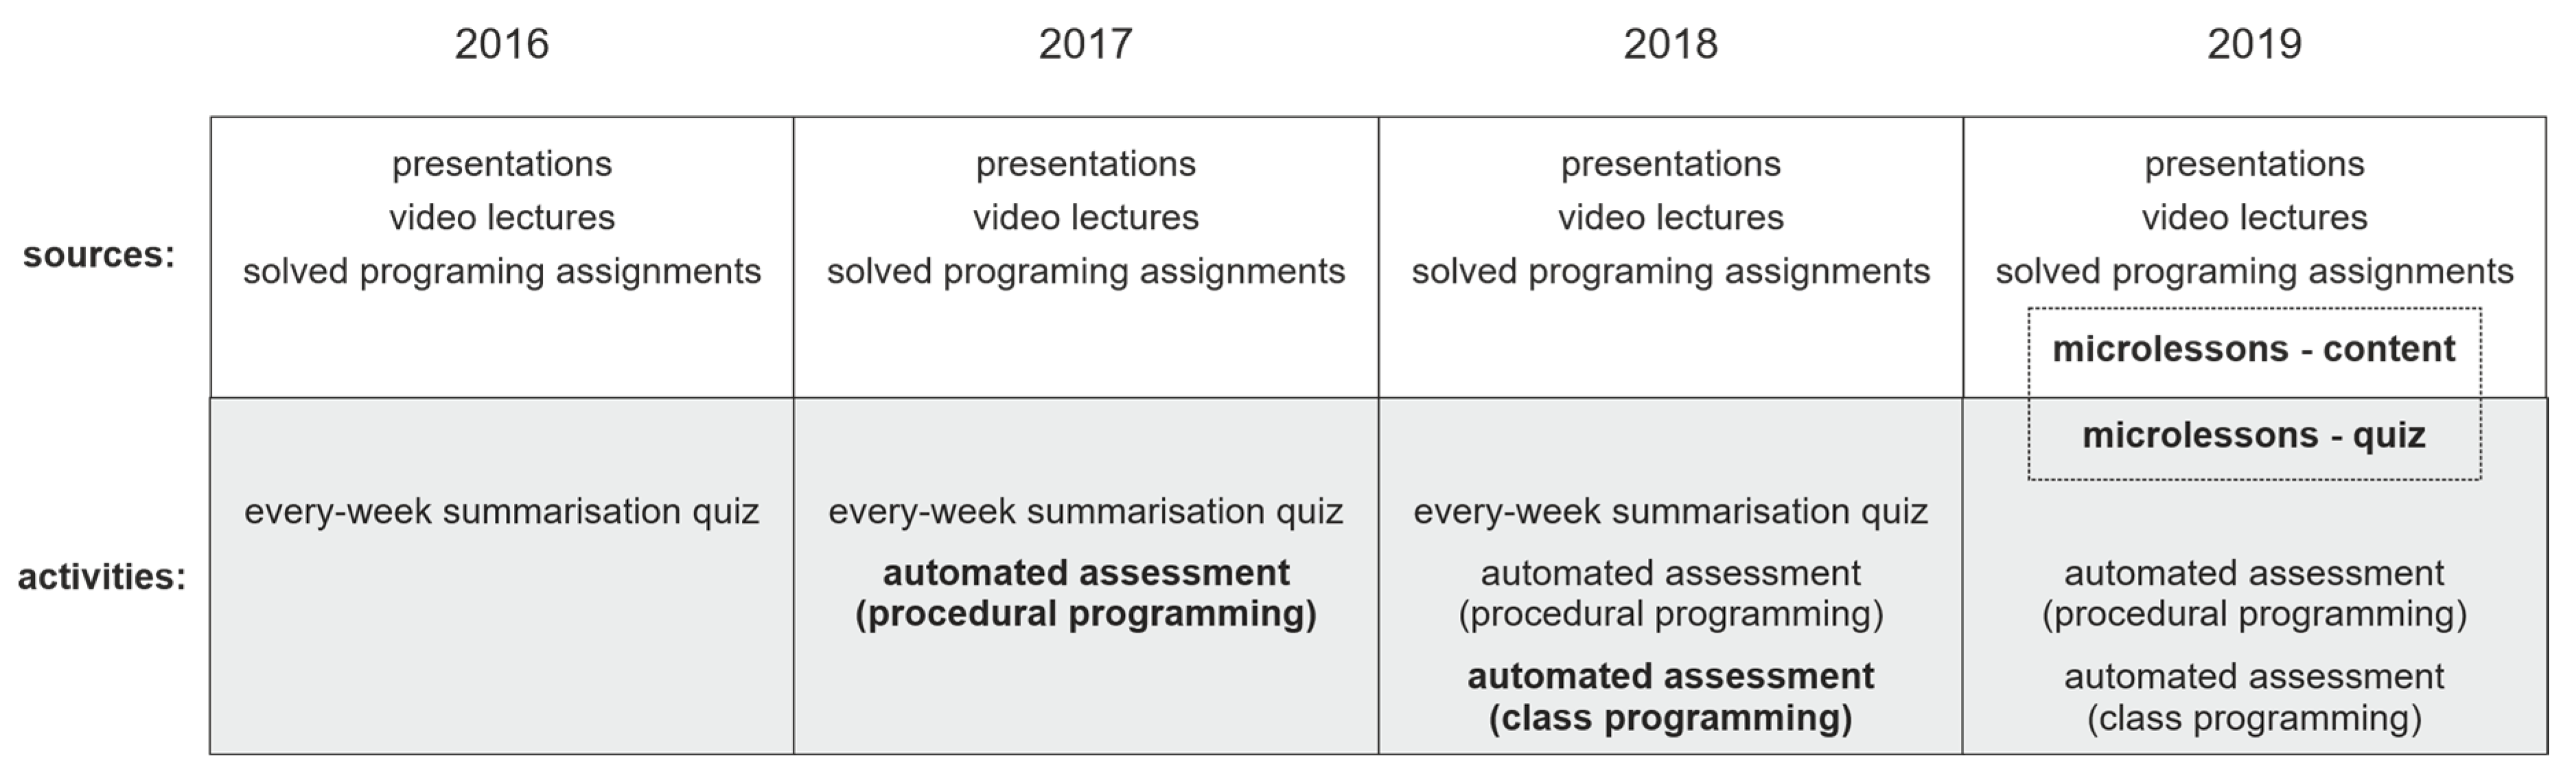 Applied Sciences Free Full Text Automated Assessment And Microlearning Units As Predictors Of At Risk Students And Students Outcomes In The Introductory Programming Courses Html